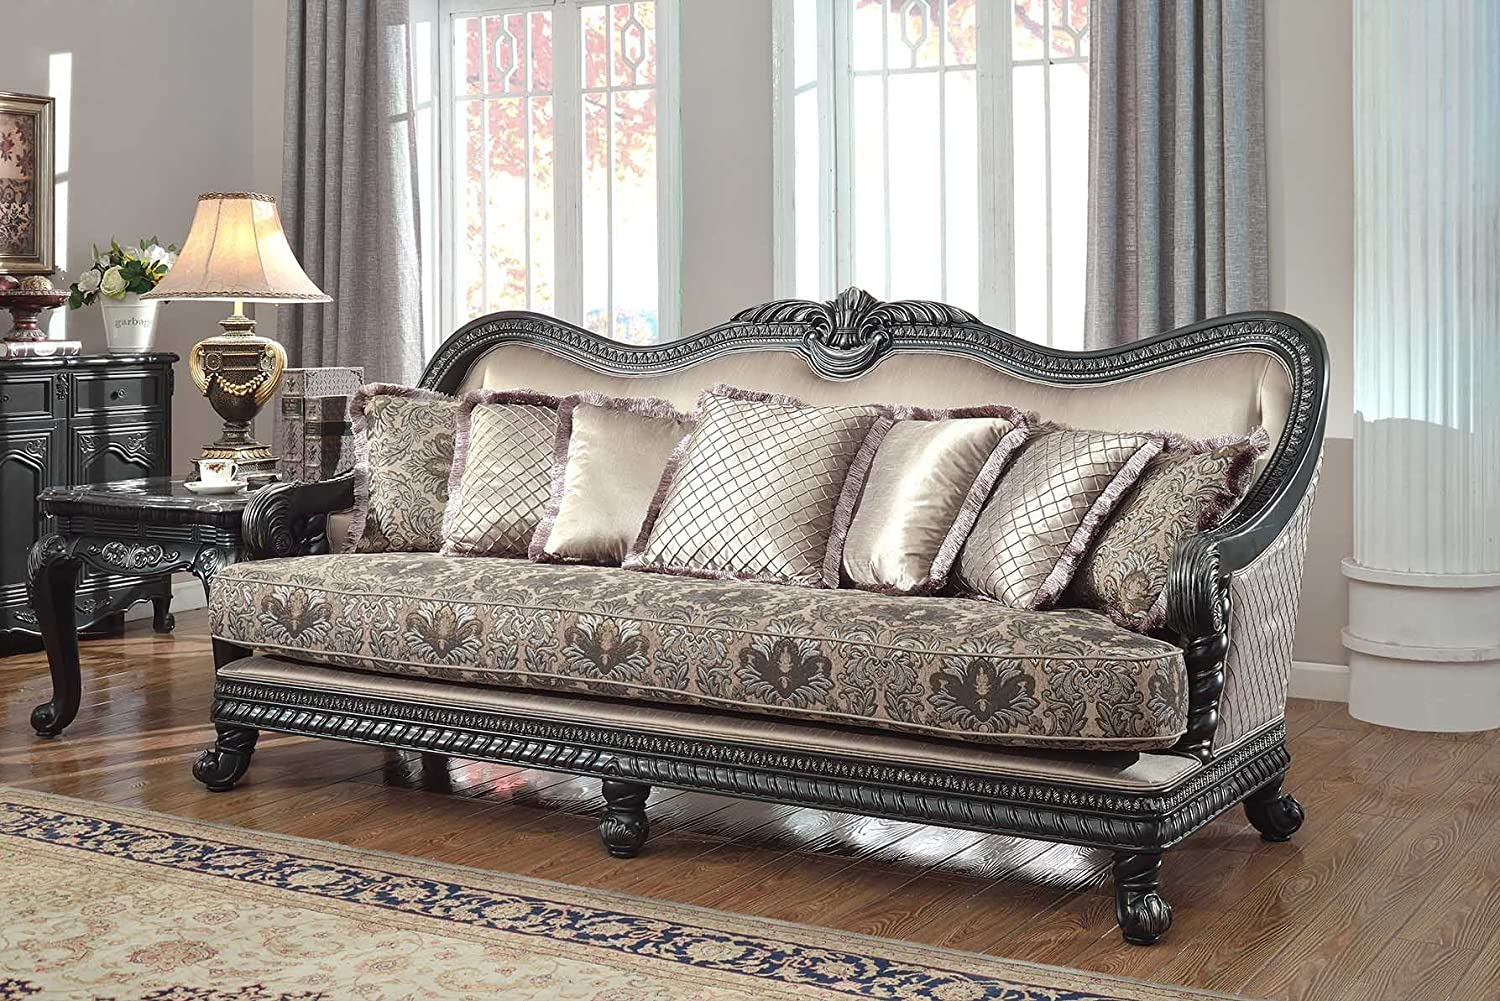 Amazon com meridian furniture 618 s florence solid wood sofa with french provincial handcrafted designs and imported fabrics black finish kitchen